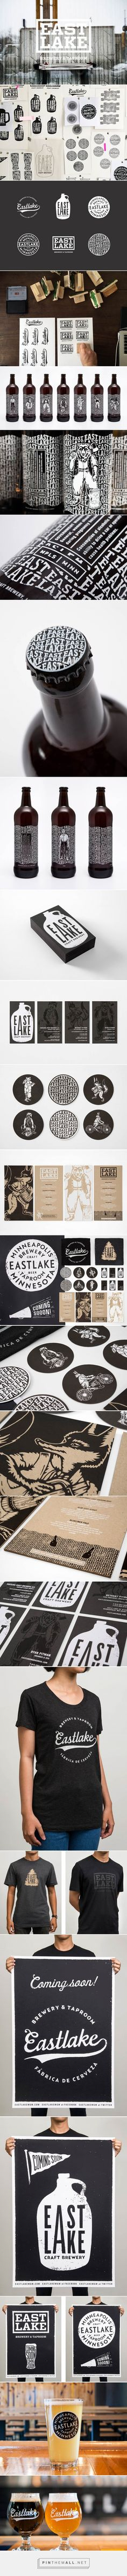 Eastlake Craft Brewery | Identity Designed - created via https://pinthemall.net